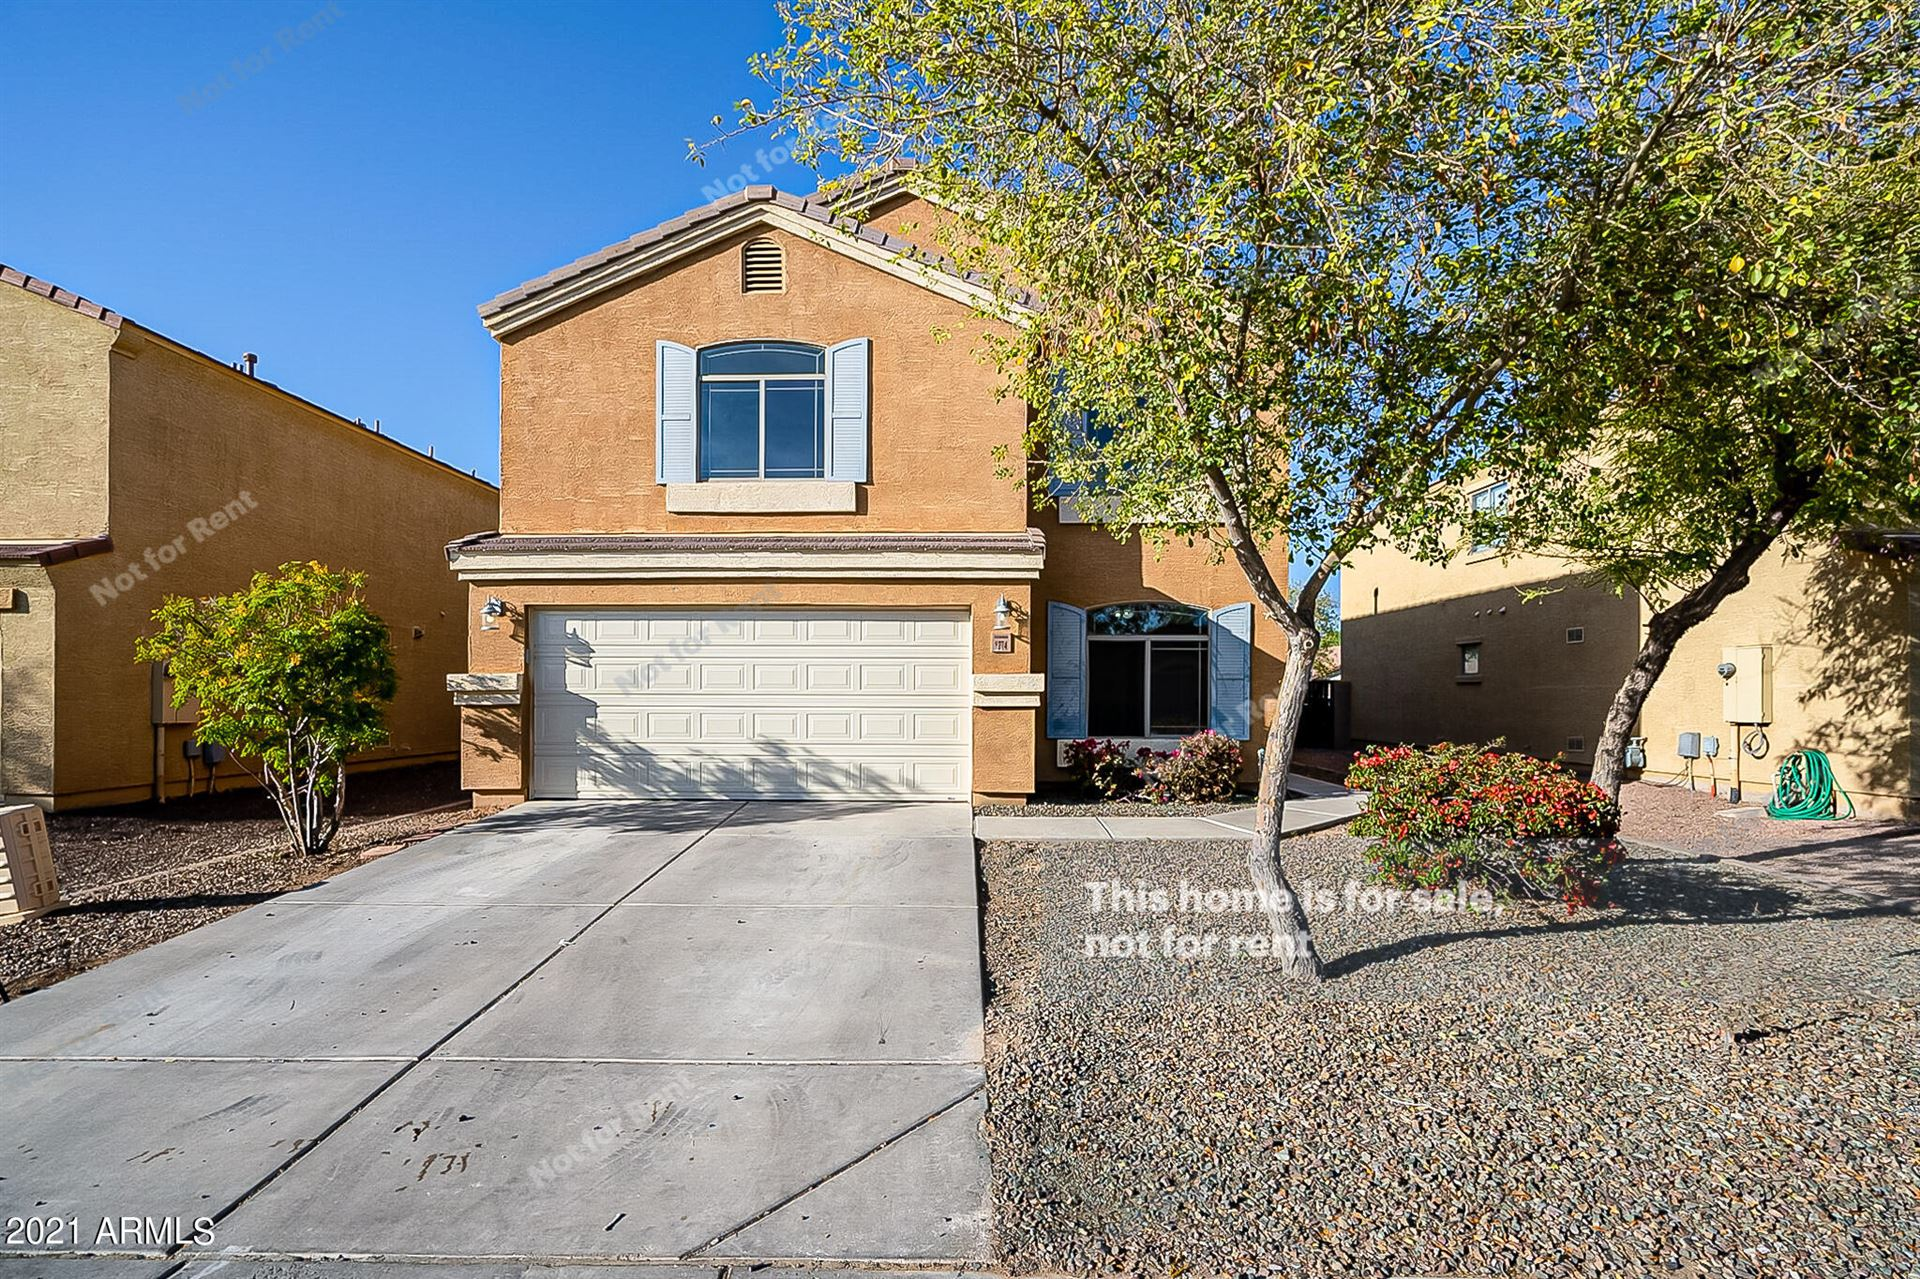 Photo of 1274 E DANIELLA Drive, San Tan Valley, AZ 85140 (MLS # 6203055)